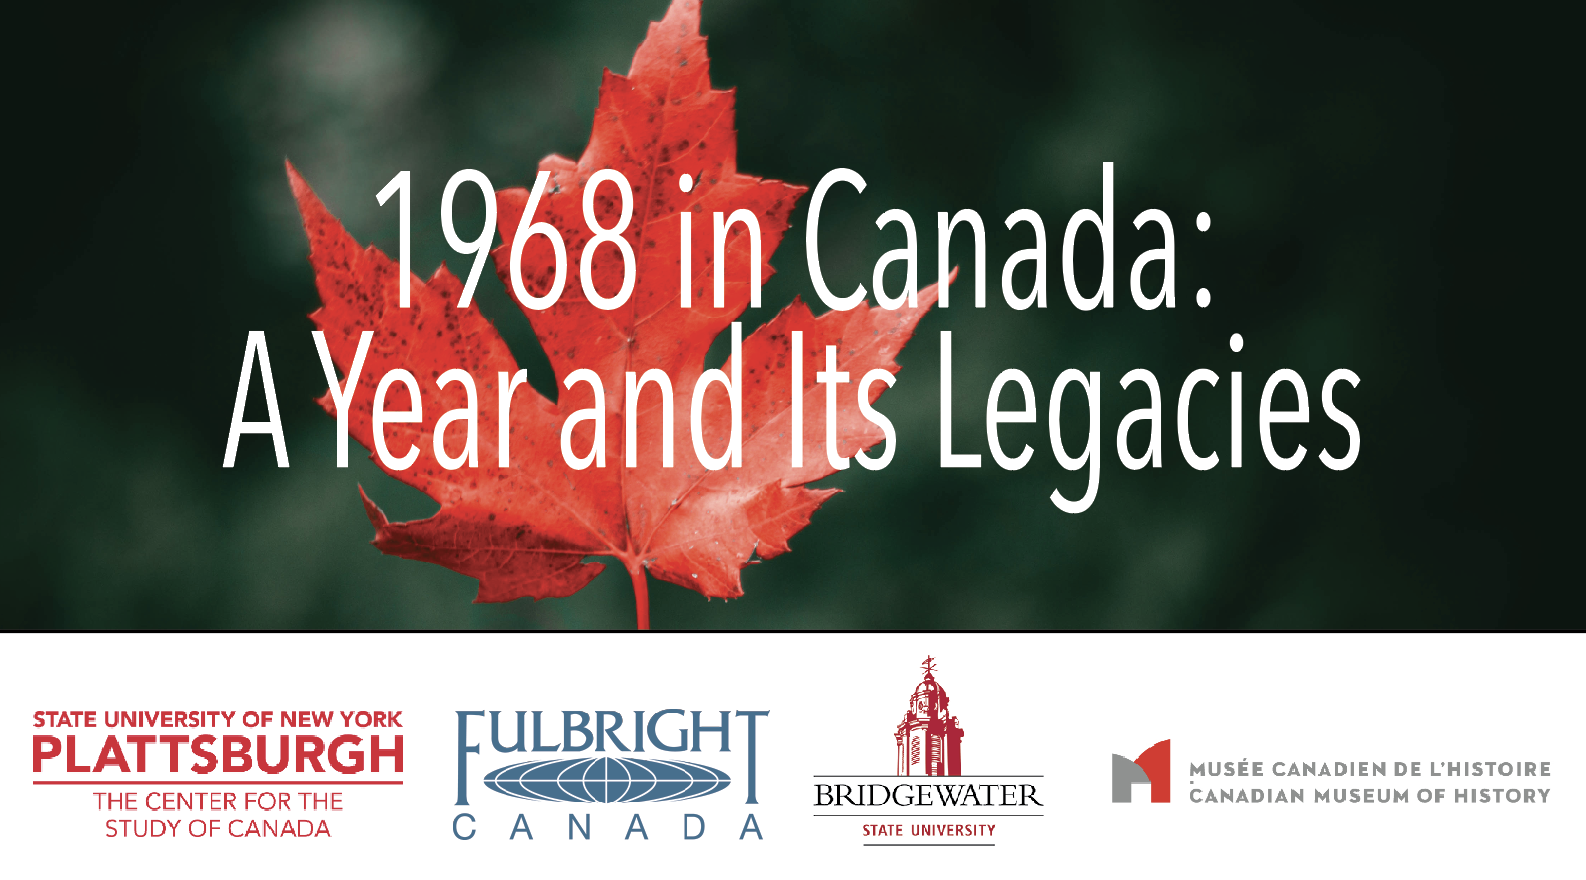 Home | Fulbright Canada